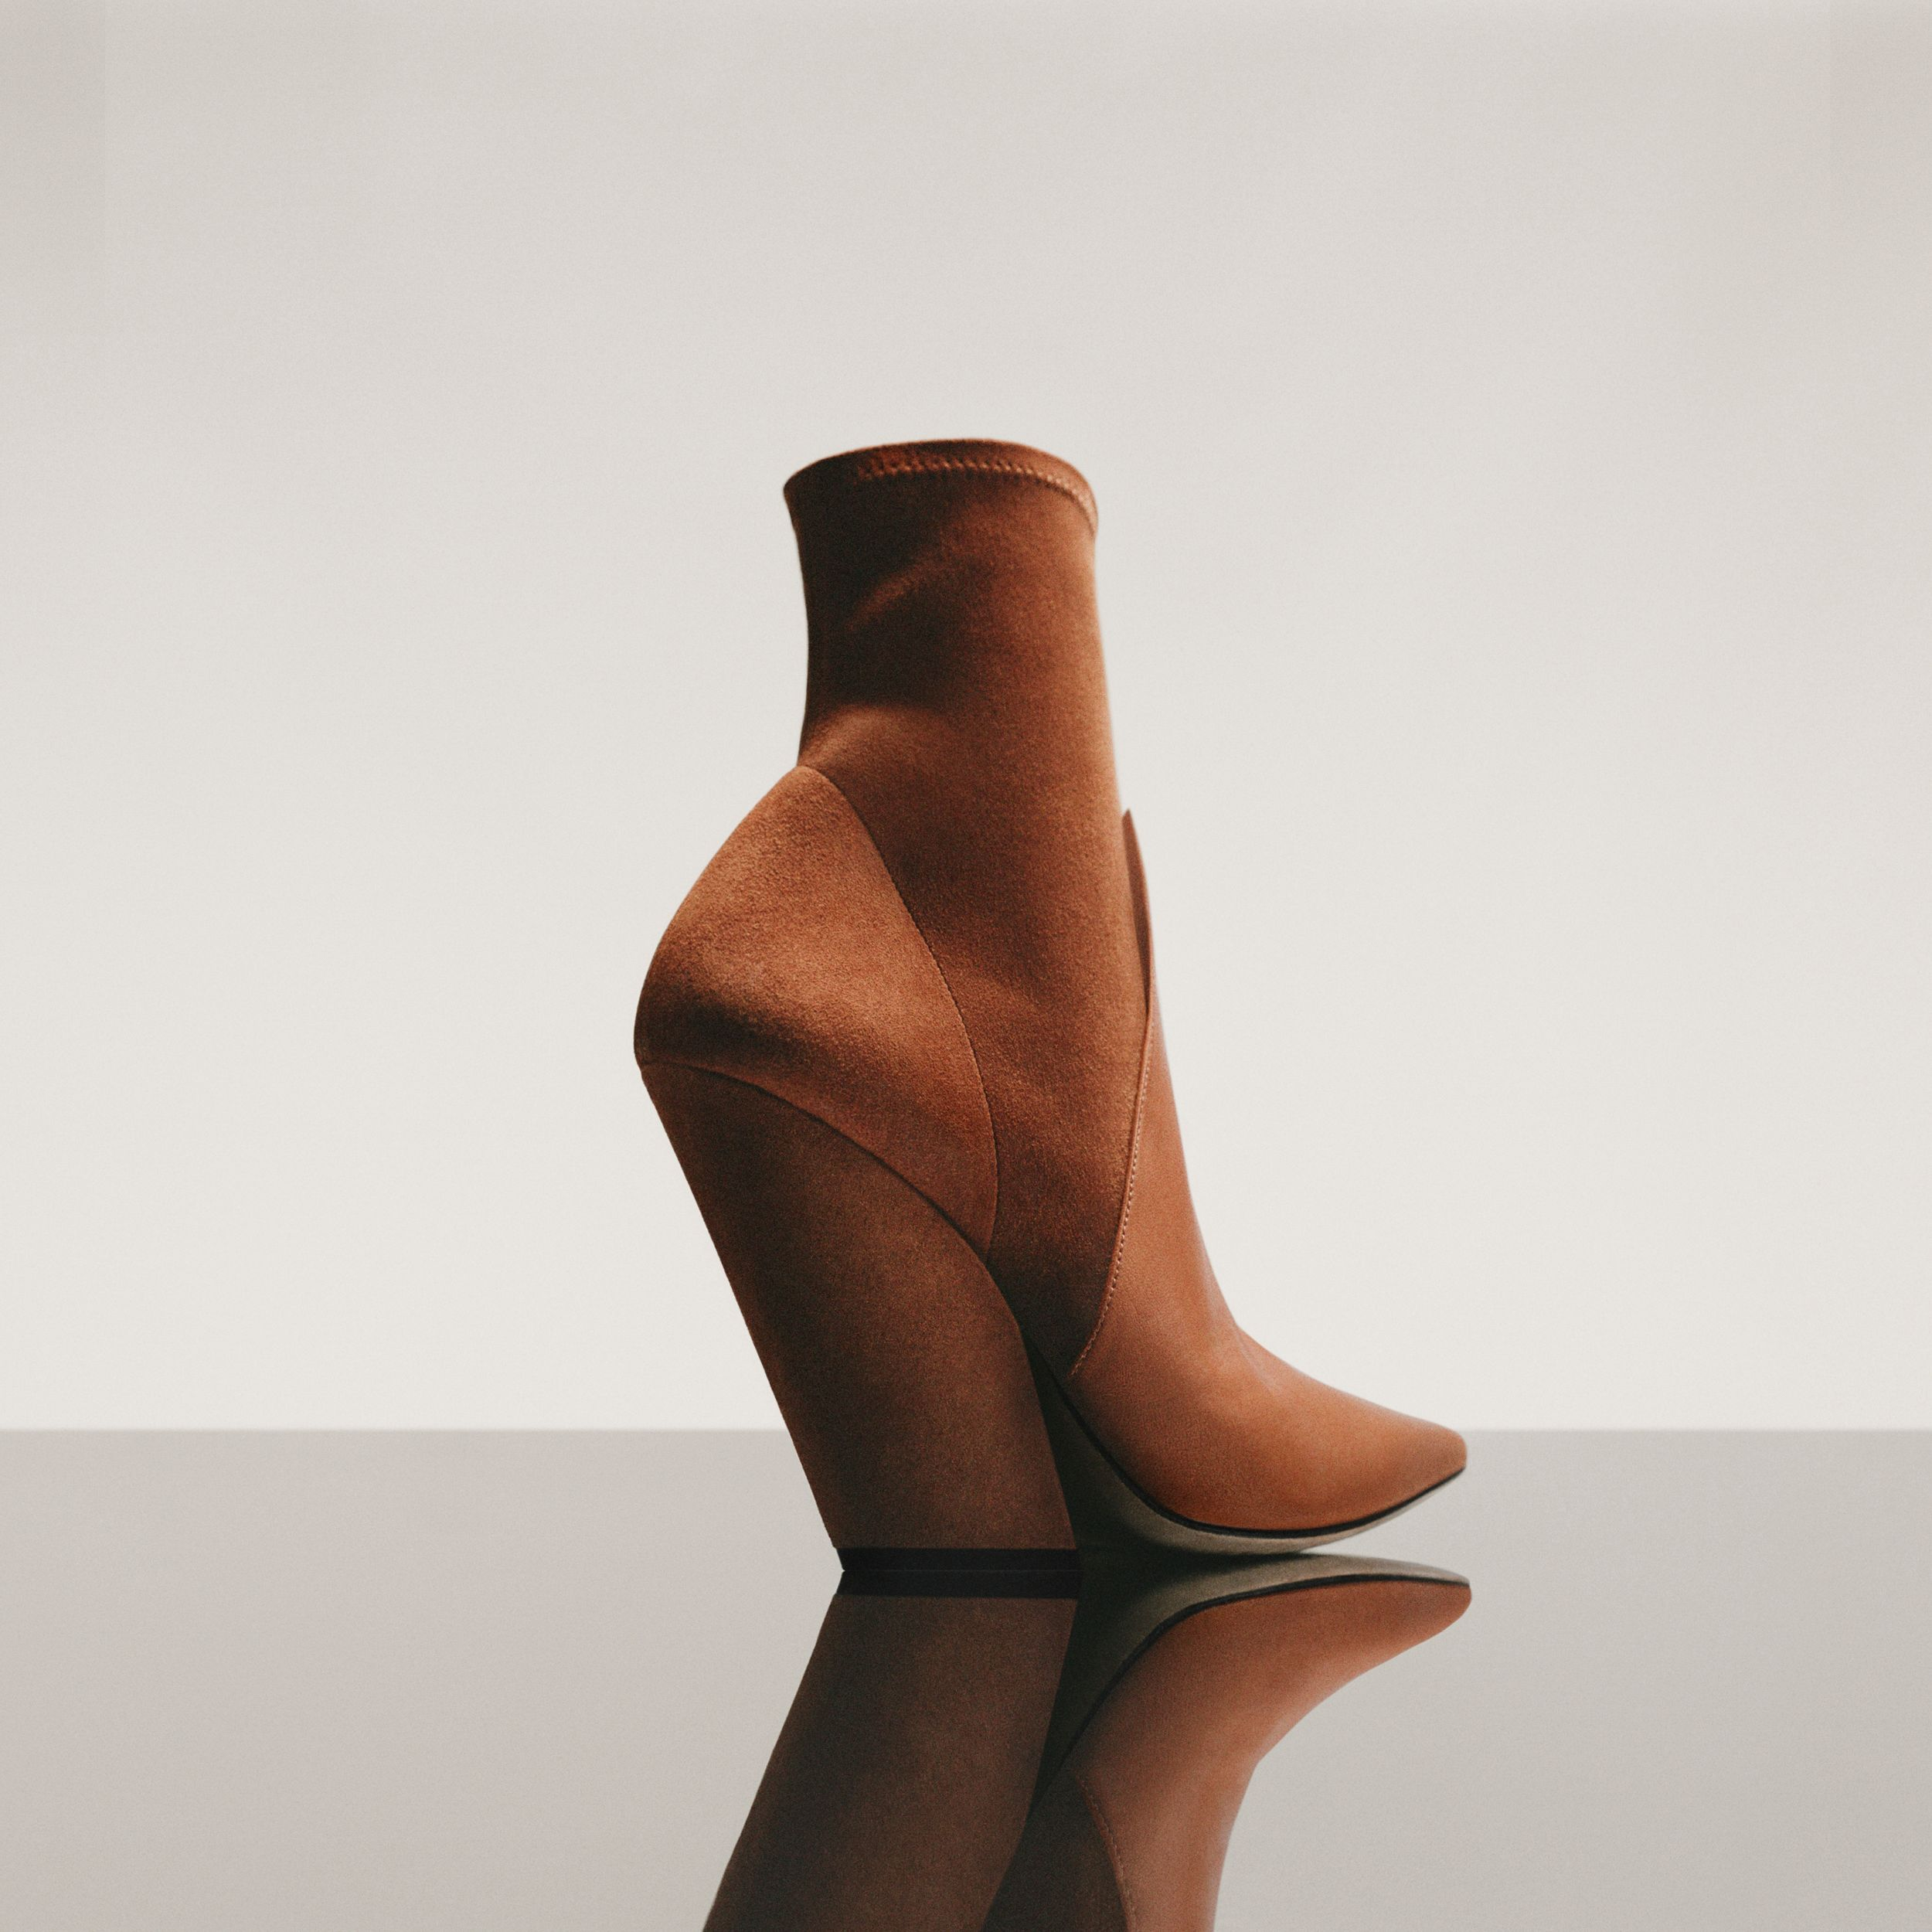 Panelled Suede and Lambskin Ankle Boots in Nutmeg - Women | Burberry - 2